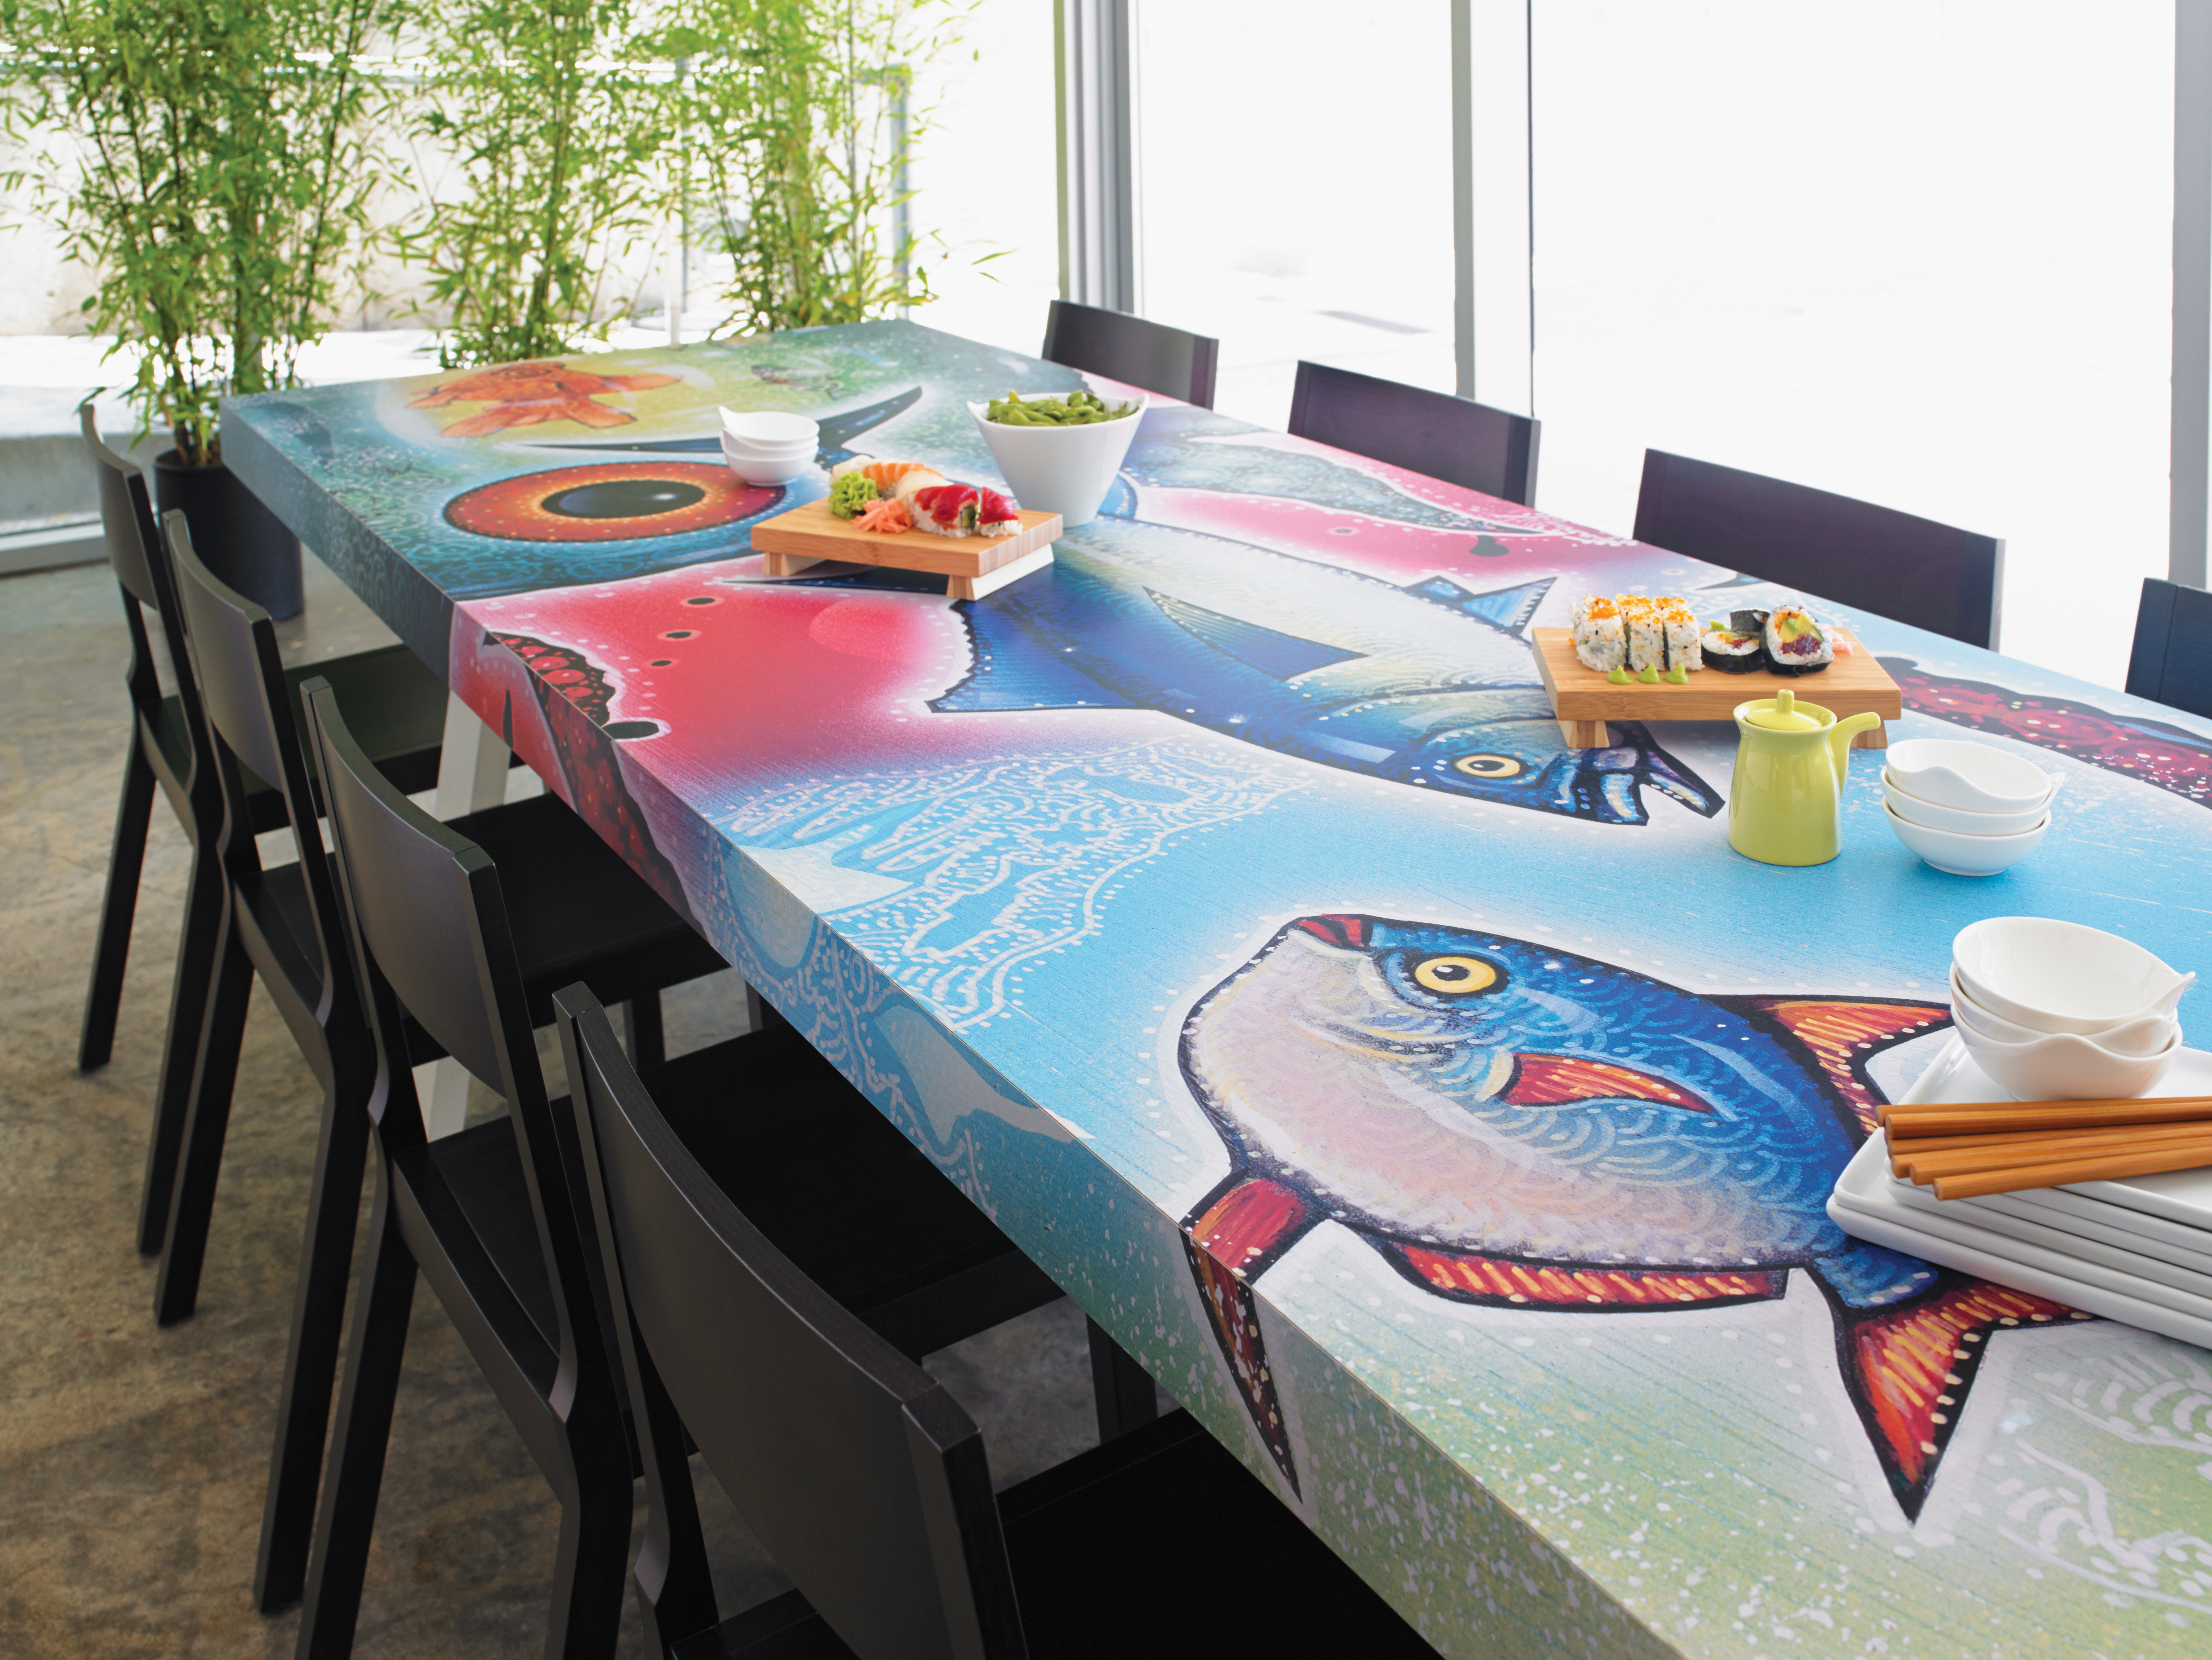 Formica Envision Brings Customizable Laminate to Interior Spaces